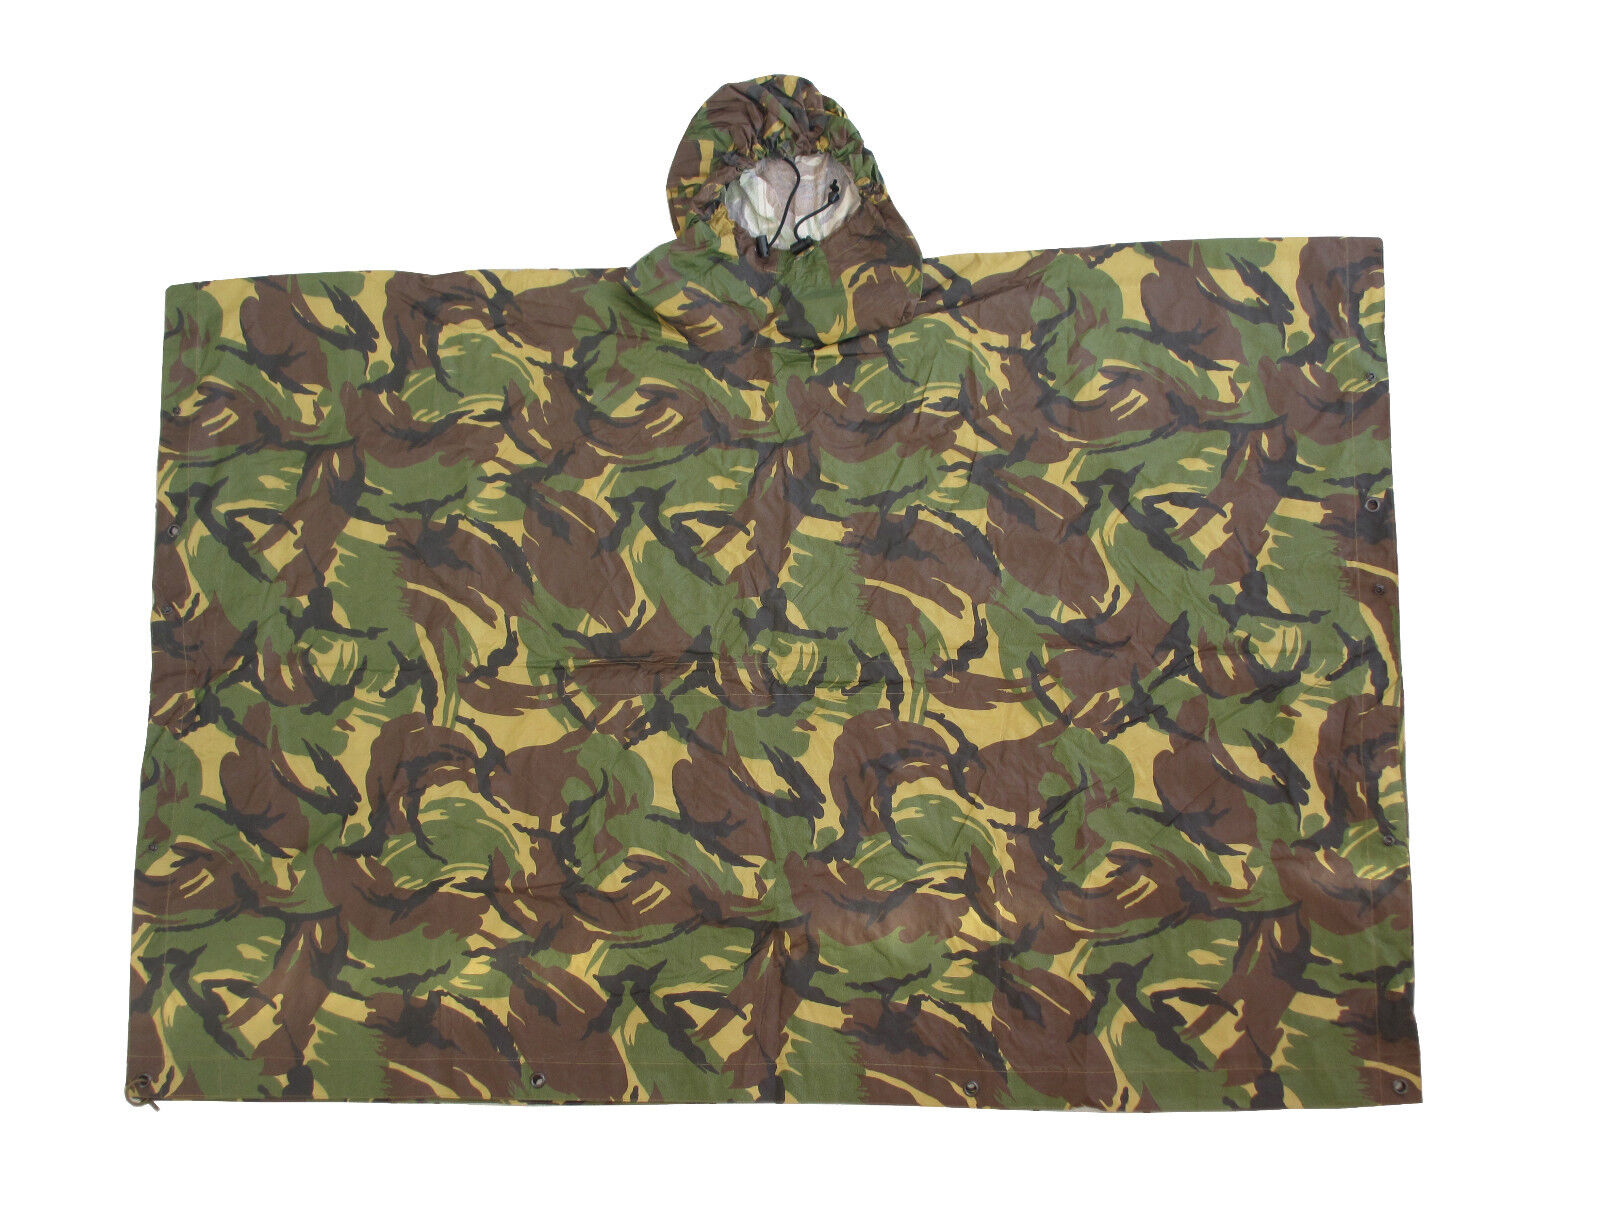 Genuine Dutch Army DPM Camouflage Hooded  Rain Poncho Grade 1  world famous sale online